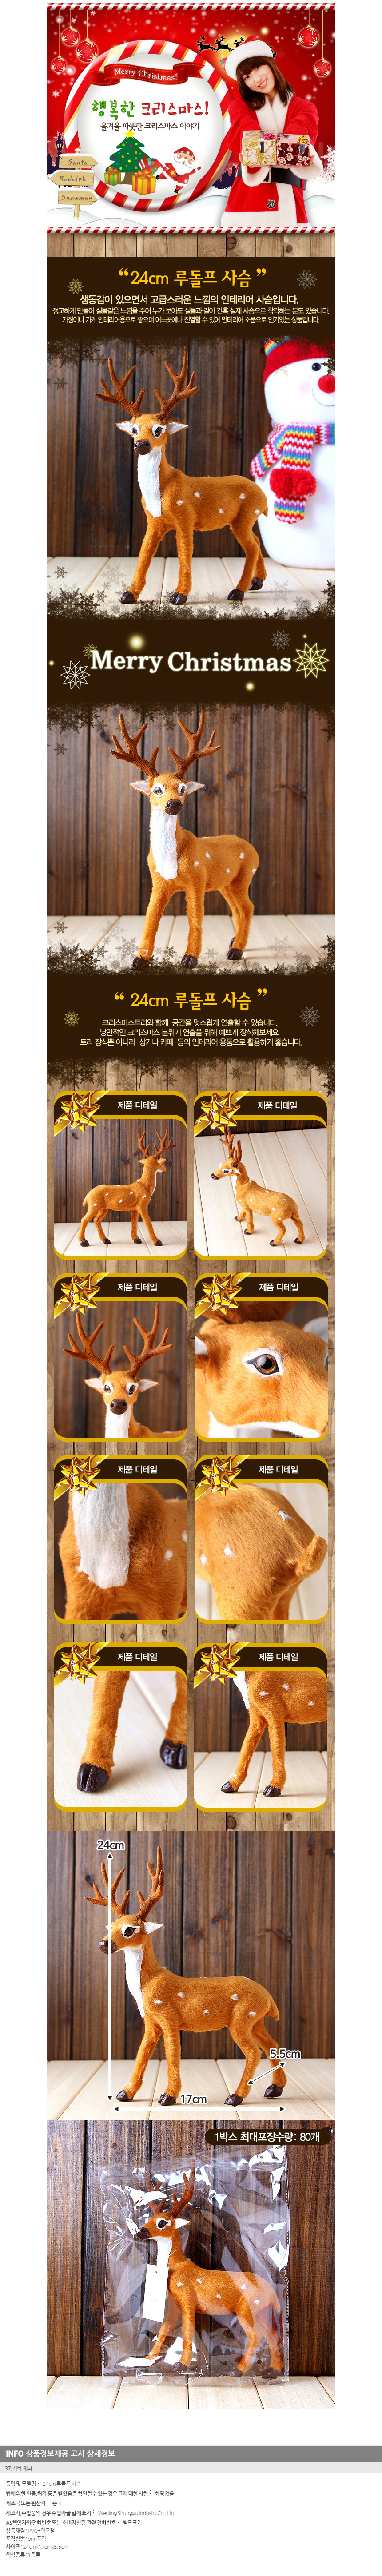 [ WINEQOK ] Christmas Goods / Rudolf deer